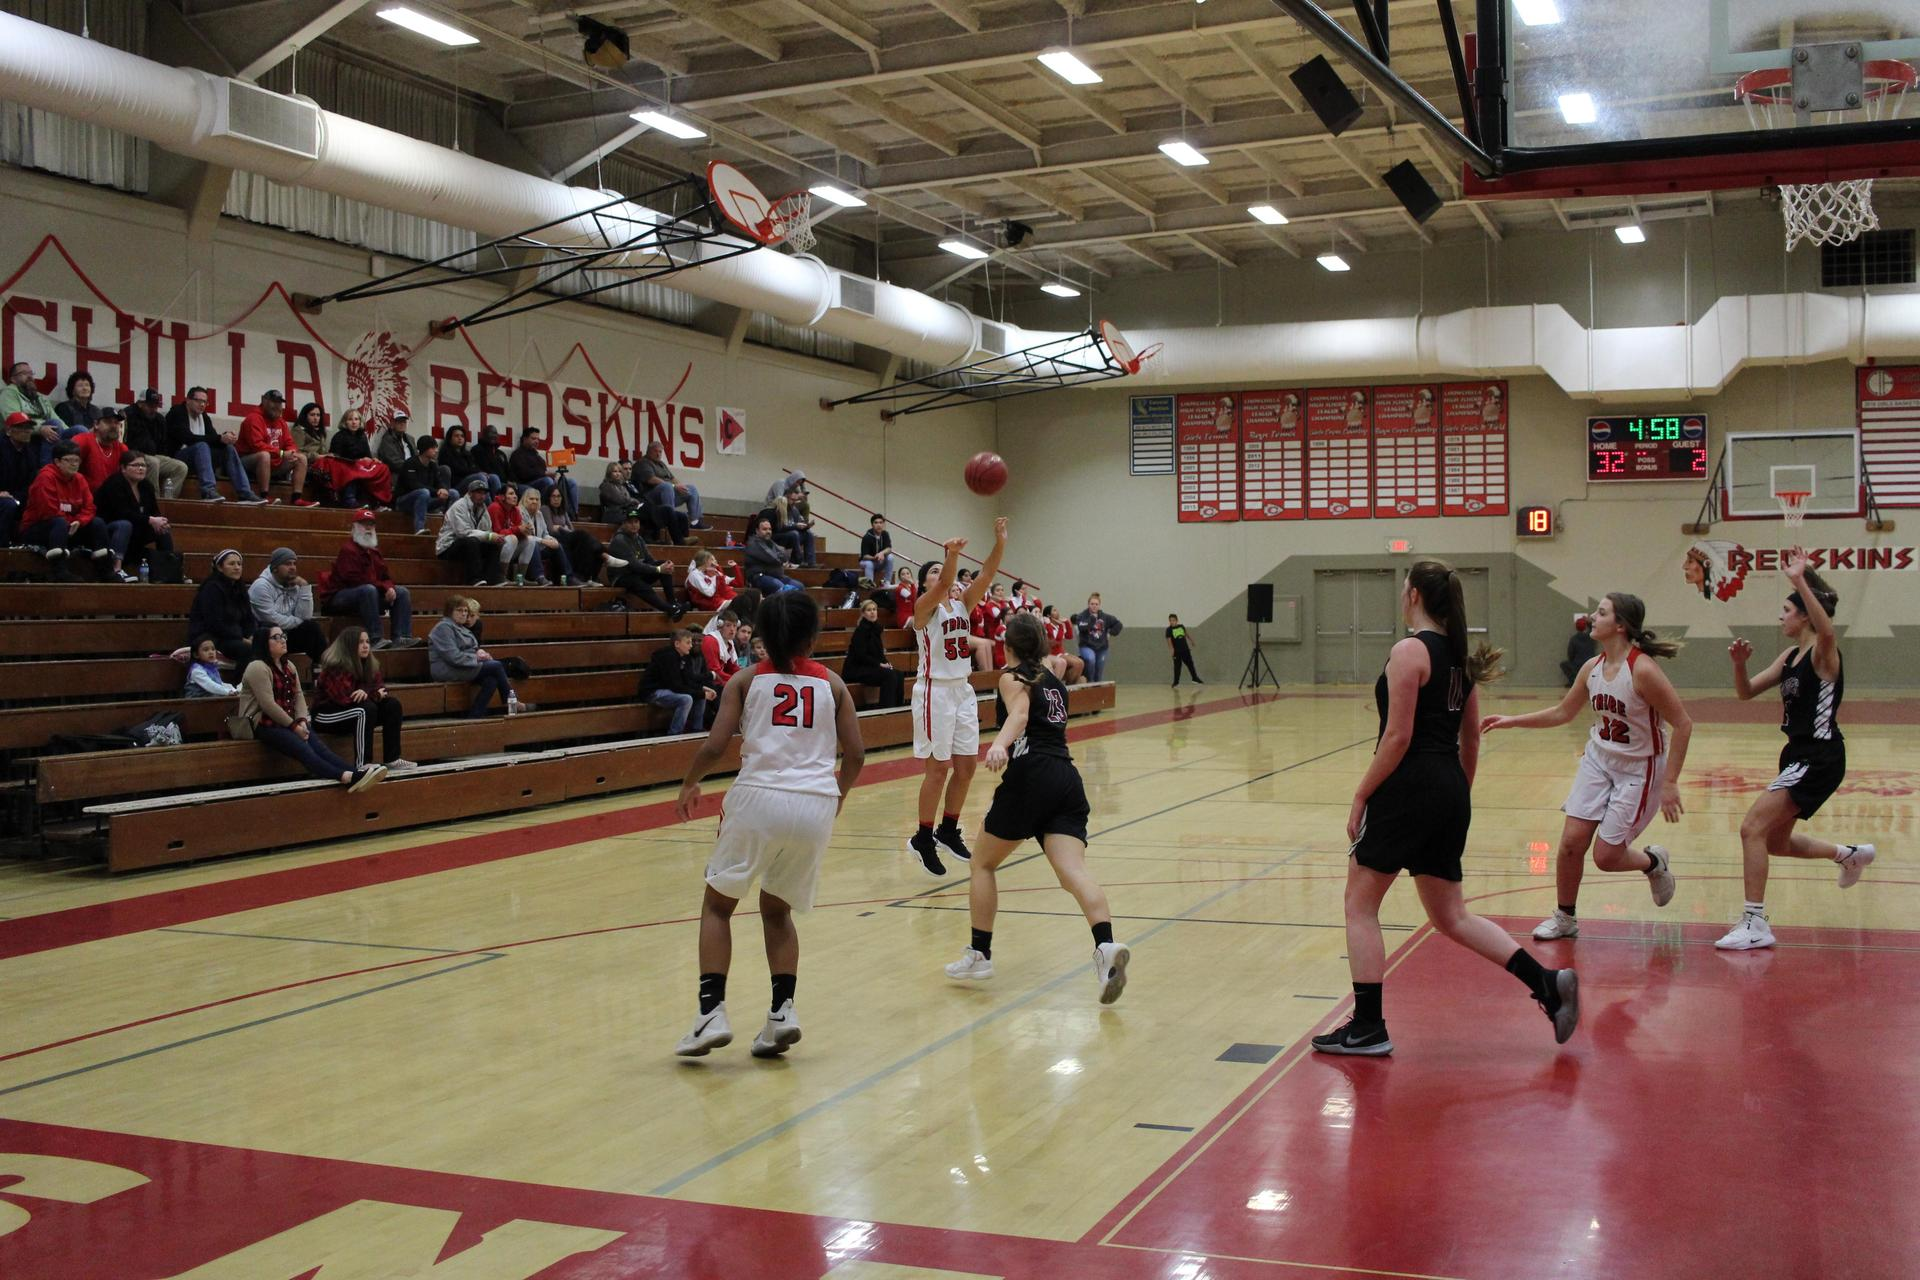 Varsity girls playing basketball against Fresno Christian